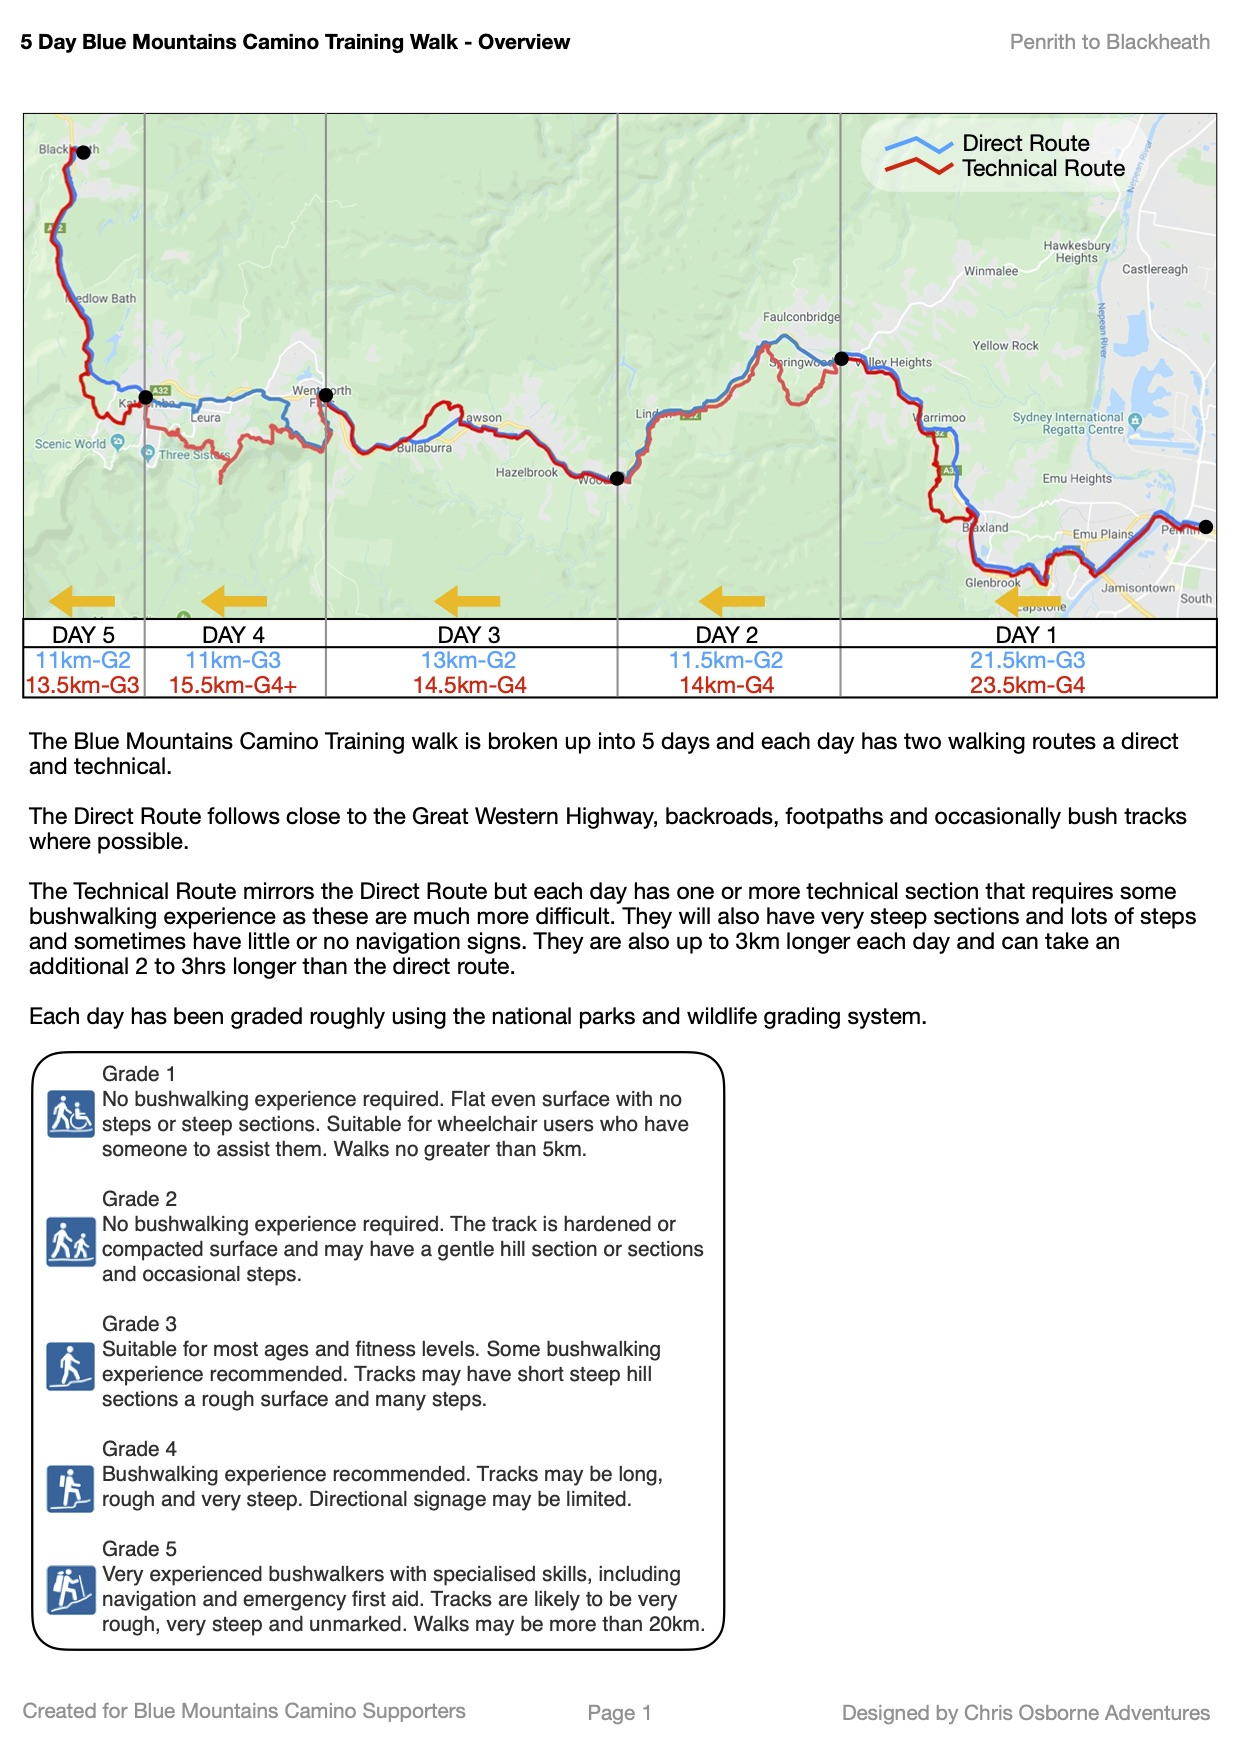 5 Day Walk Overview